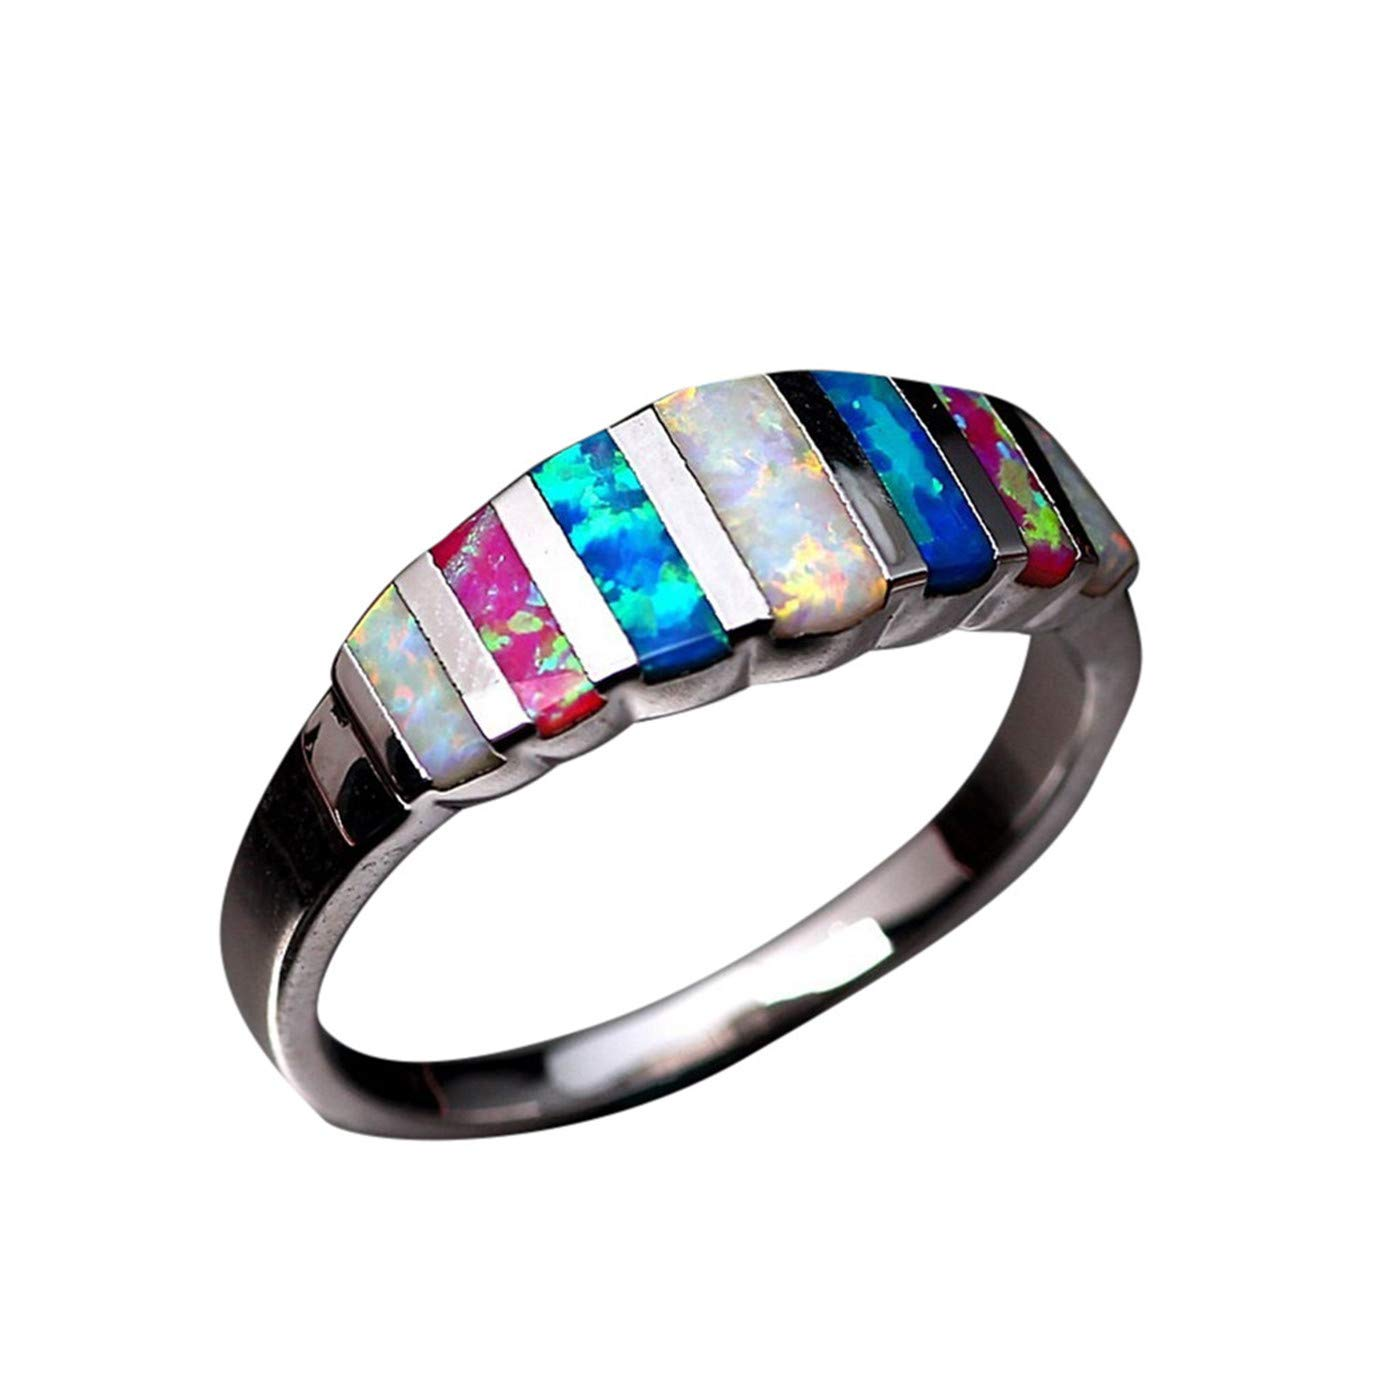 HUAMING New Womens Inlaid Natural Colorful Stone Opel Ring Opal Ring Lucky in Love Wedding Band Engagement Ring Perfect Clothing Match (Multicolor, 5)